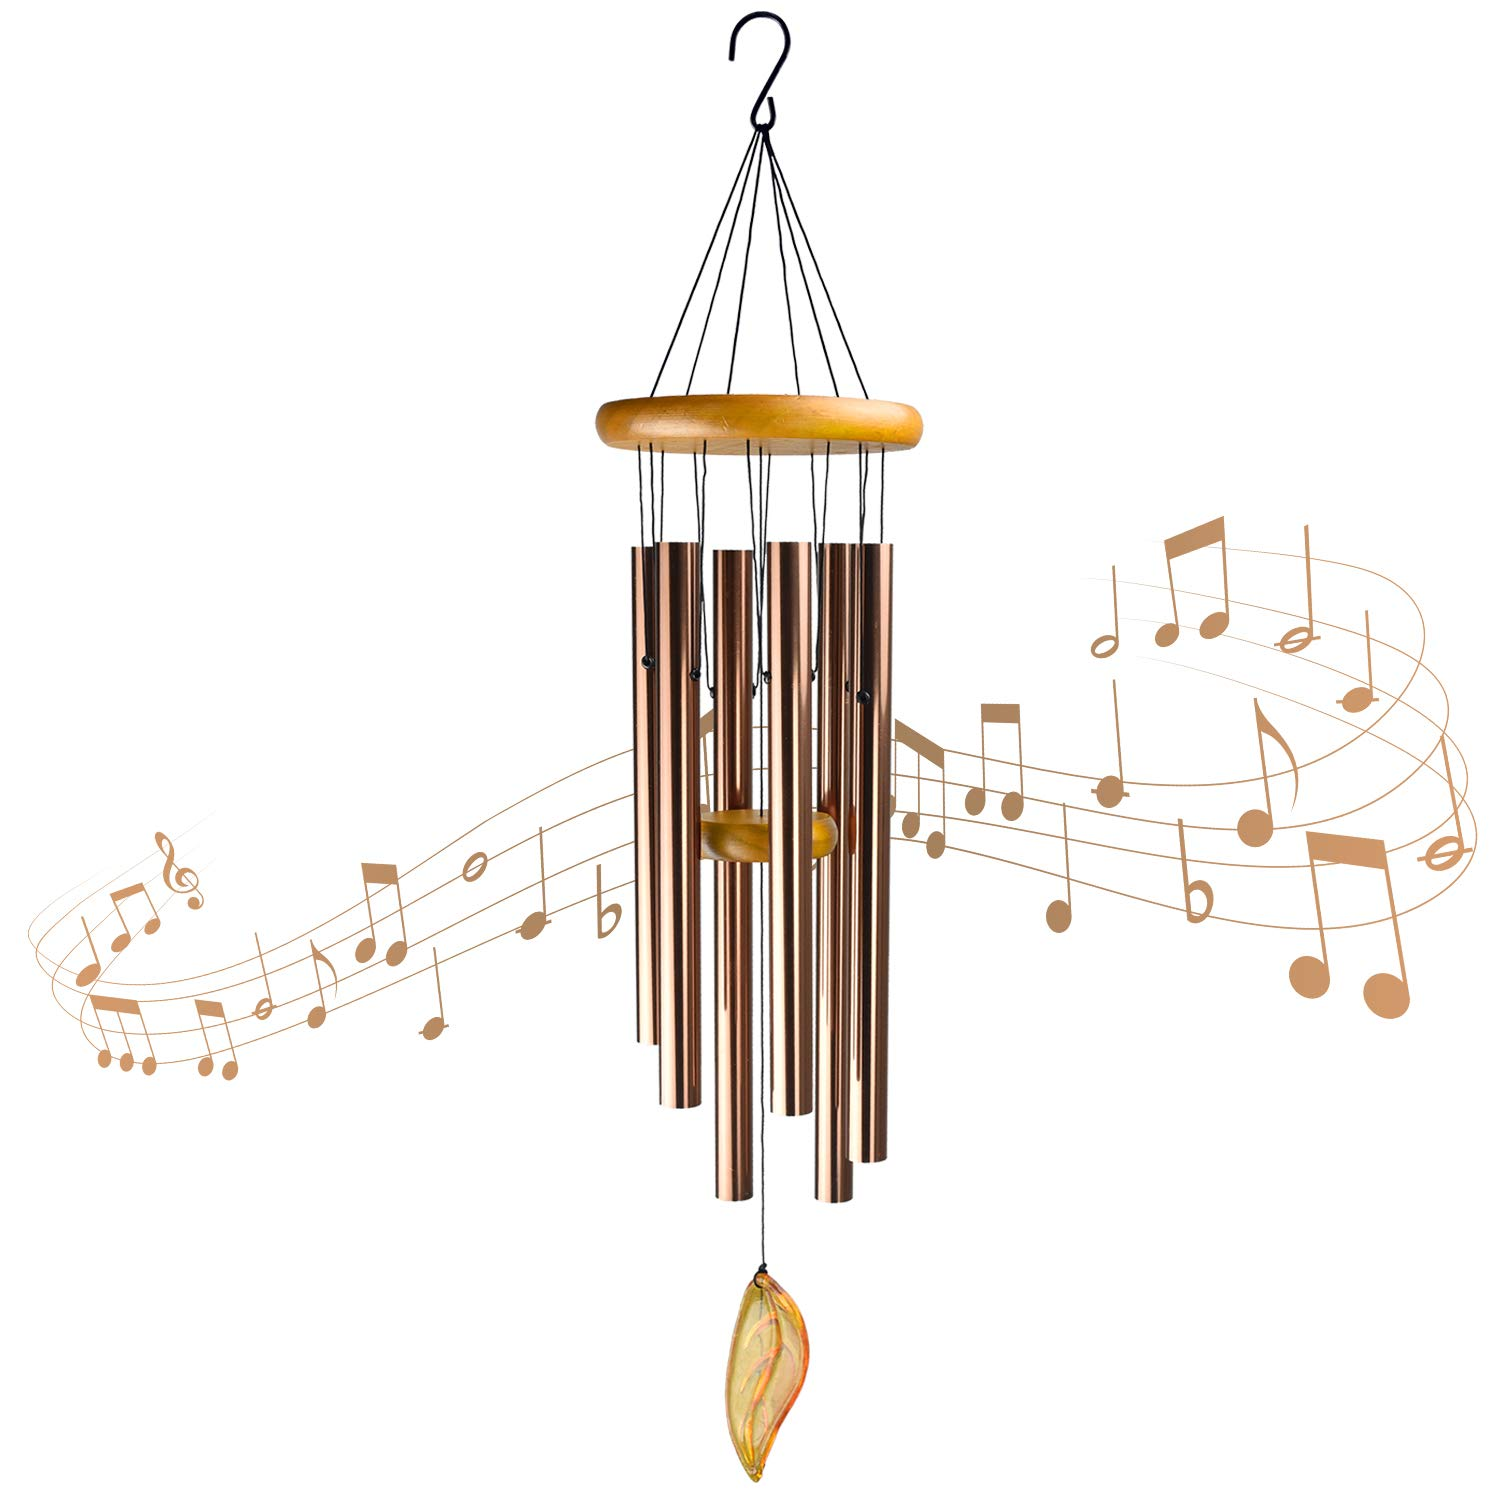 Mozing Large Wind Chimes Outdoor Deep Tone,Wooden Windchime Amazing Grace with 6 Metal Tubes for Memorial Sympathy Gifts for Patio Garden House (36inch)